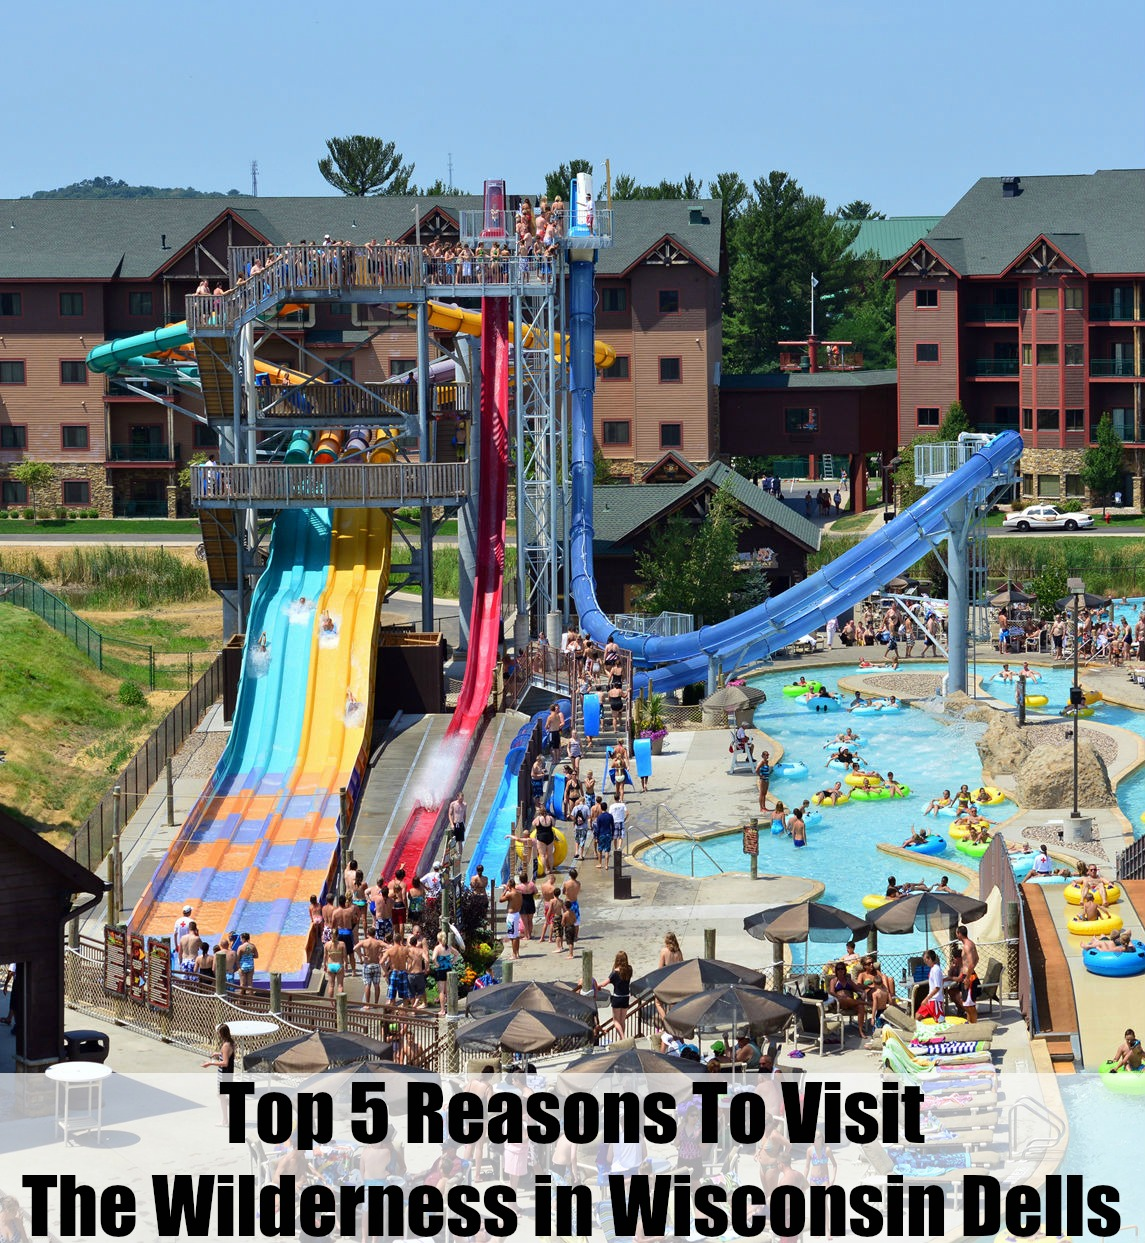 Top 5 Reasons To Visit The Wilderness Resort In The